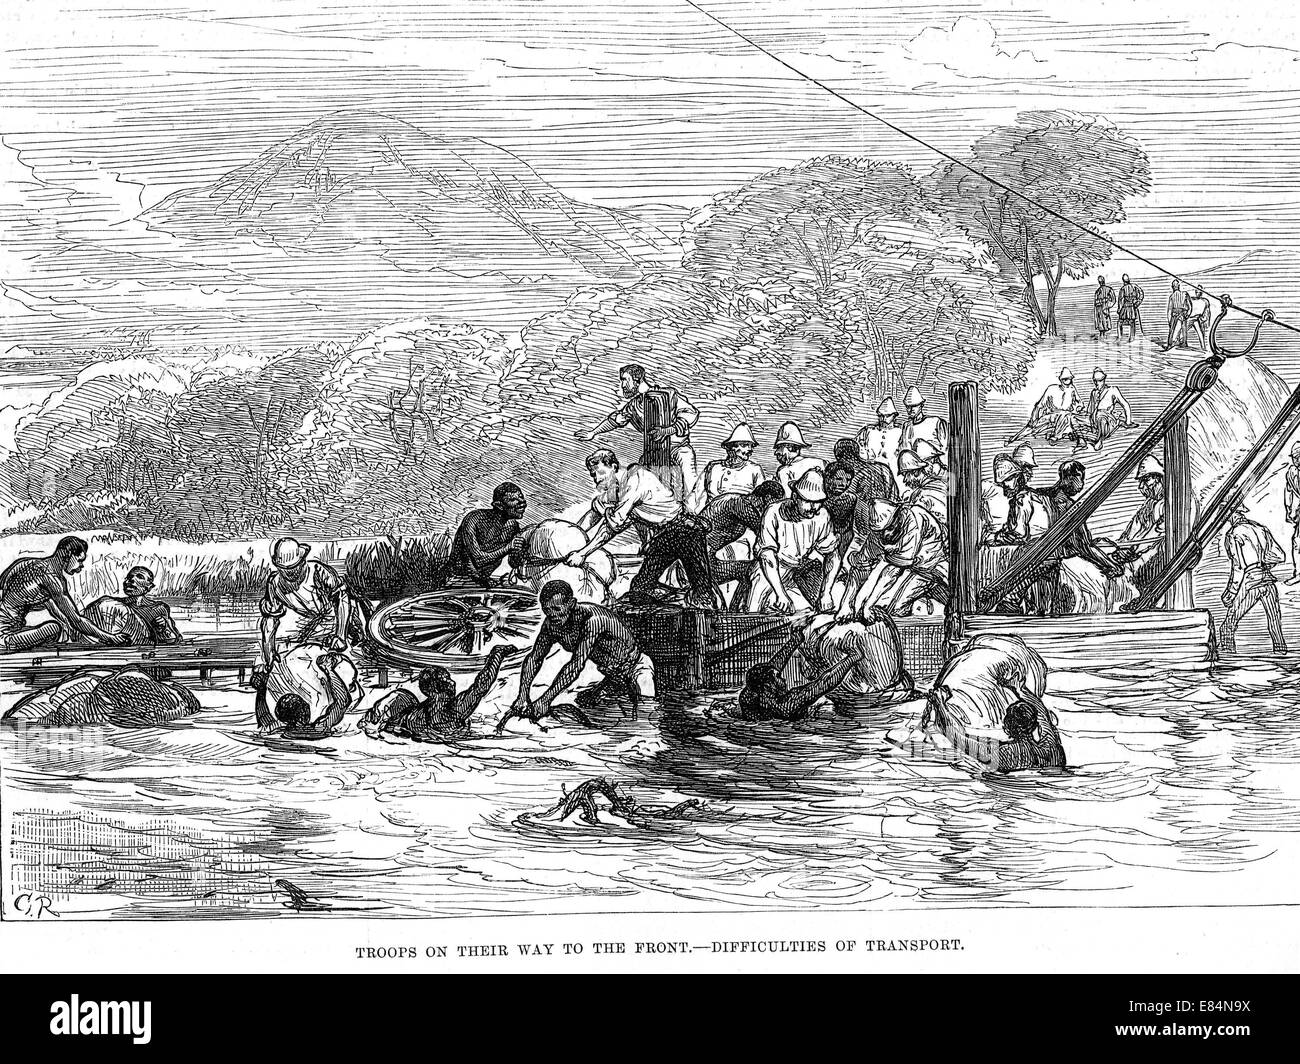 ZULU WAR 1879 British troops making a river crossing from the Illustrated London News 12 April 1879 - Stock Image